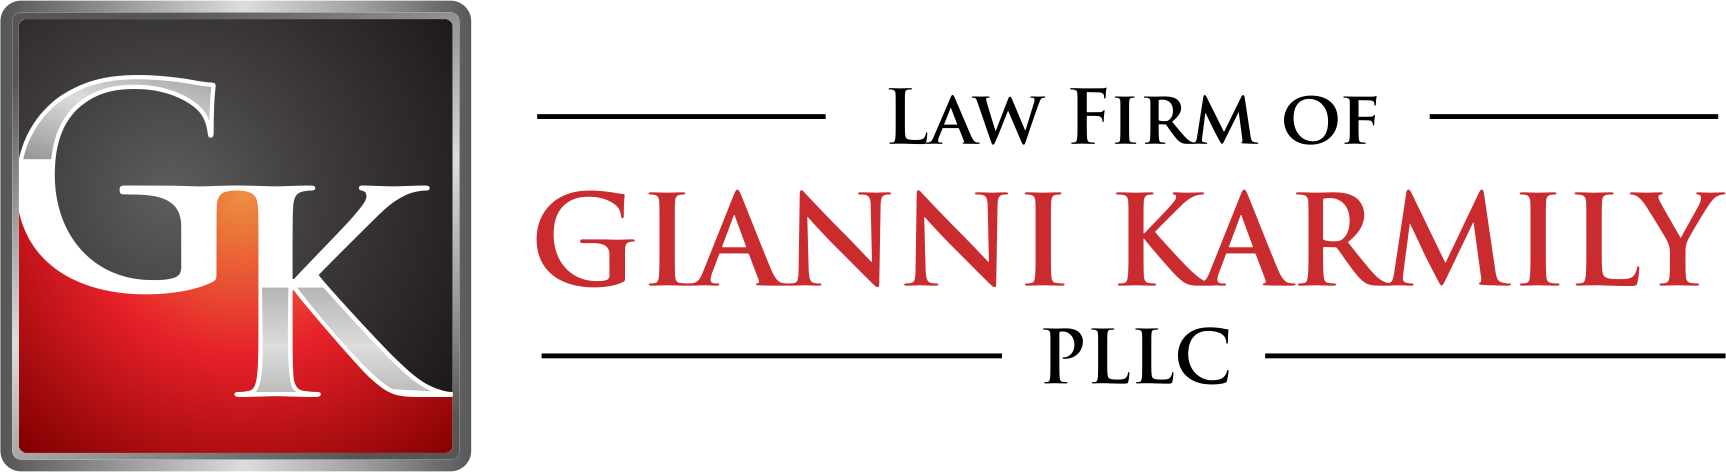 Law Firm of Gianni Karmily, PLLC, a Criminal Justice Attorney in Great Neck, NY Announces Expanded Hours